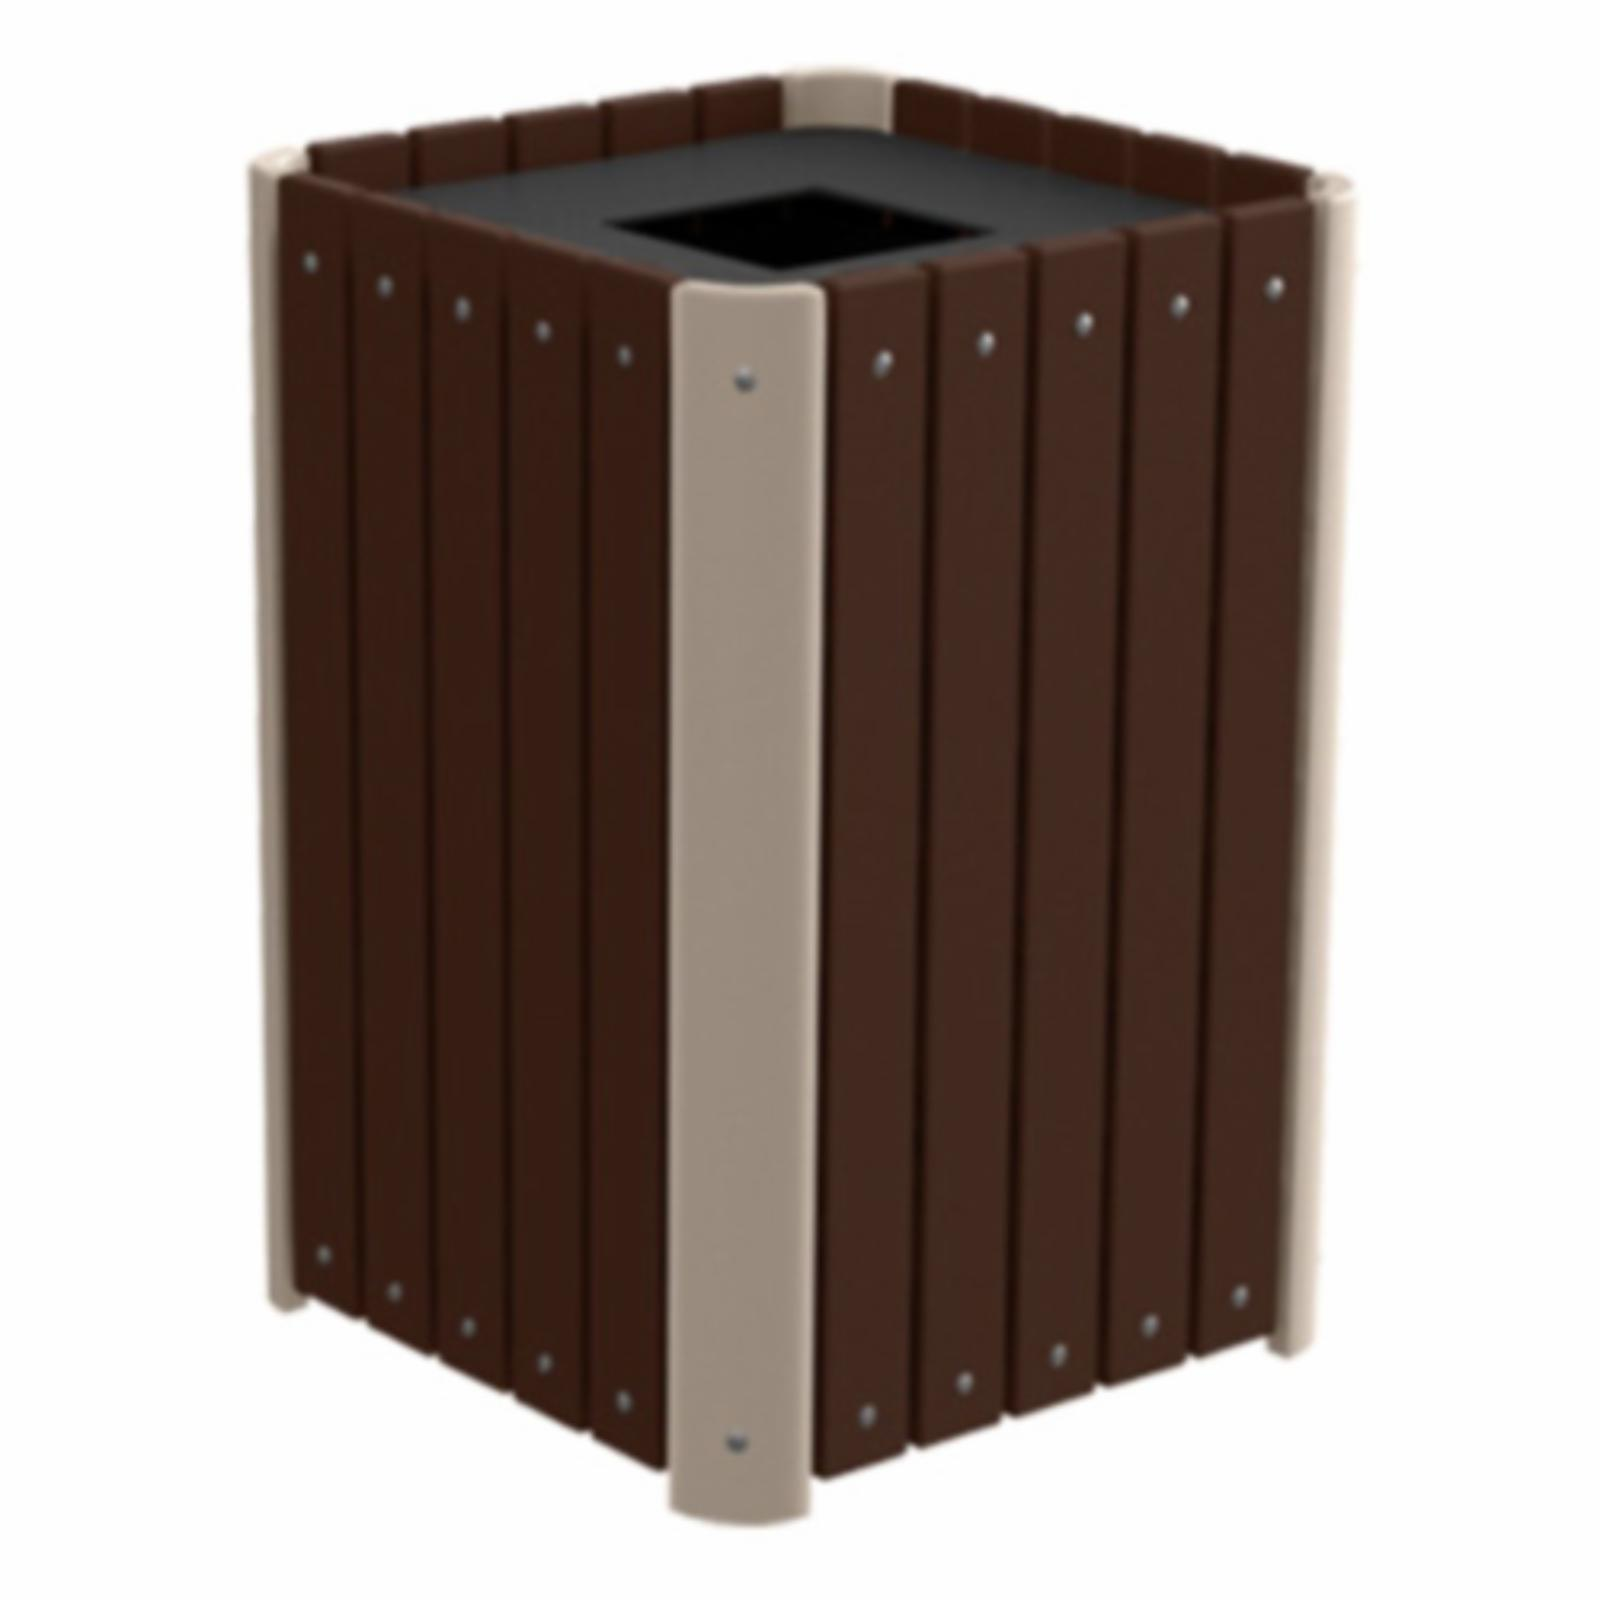 Treetop Products Regal Slatted 33 Gallon Top Load Outdoor Trash Receptacle Brown/Desert Tan - 4ZK4918-BN/DT